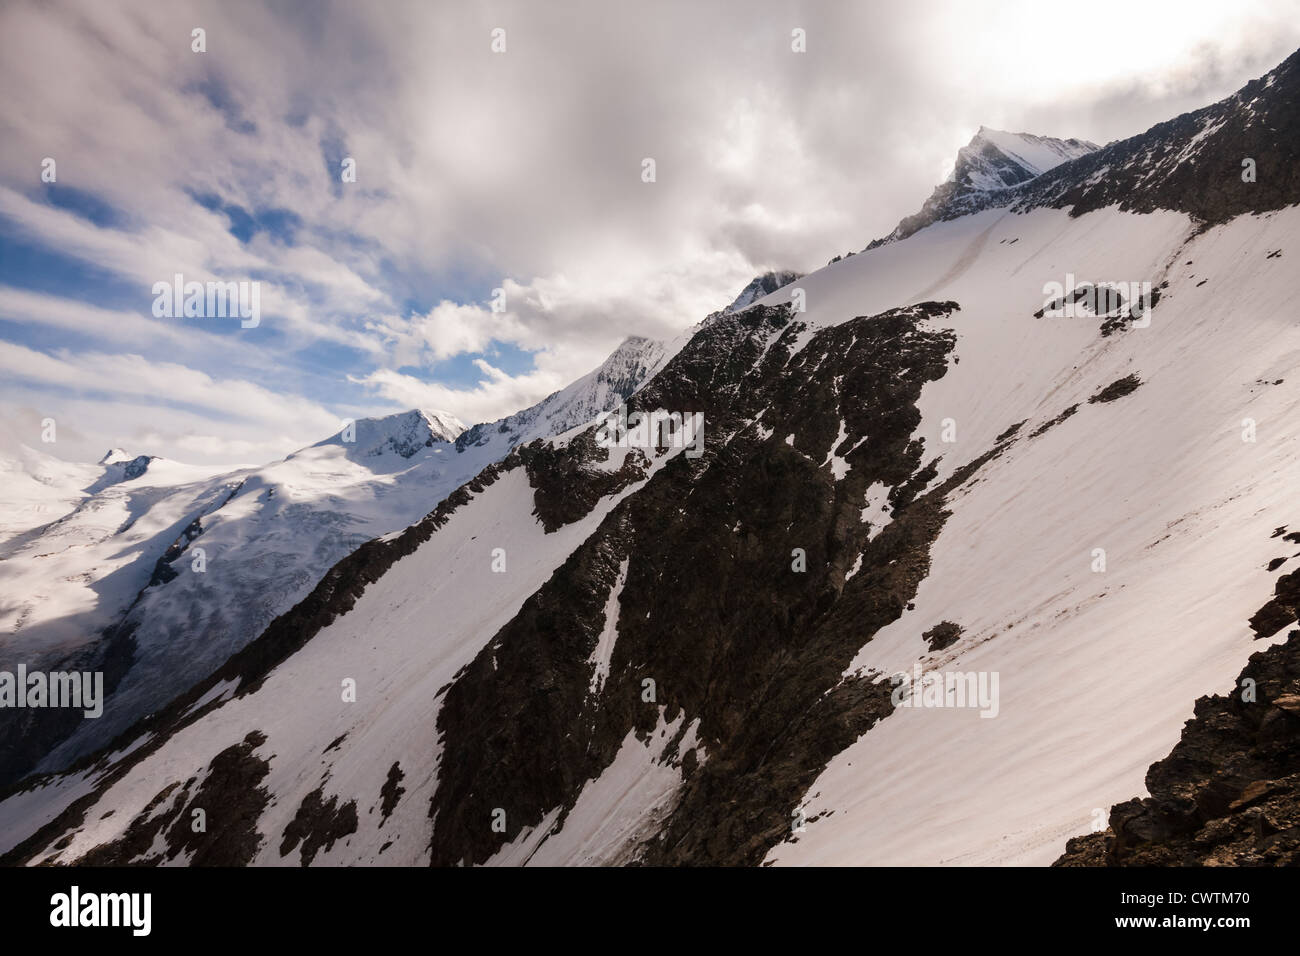 Summits of Alphubel, Taschhorn, Dom and Lenzspitze from the Mischabel Hut above Saas Fee in the Alps, Switzerland. - Stock Image